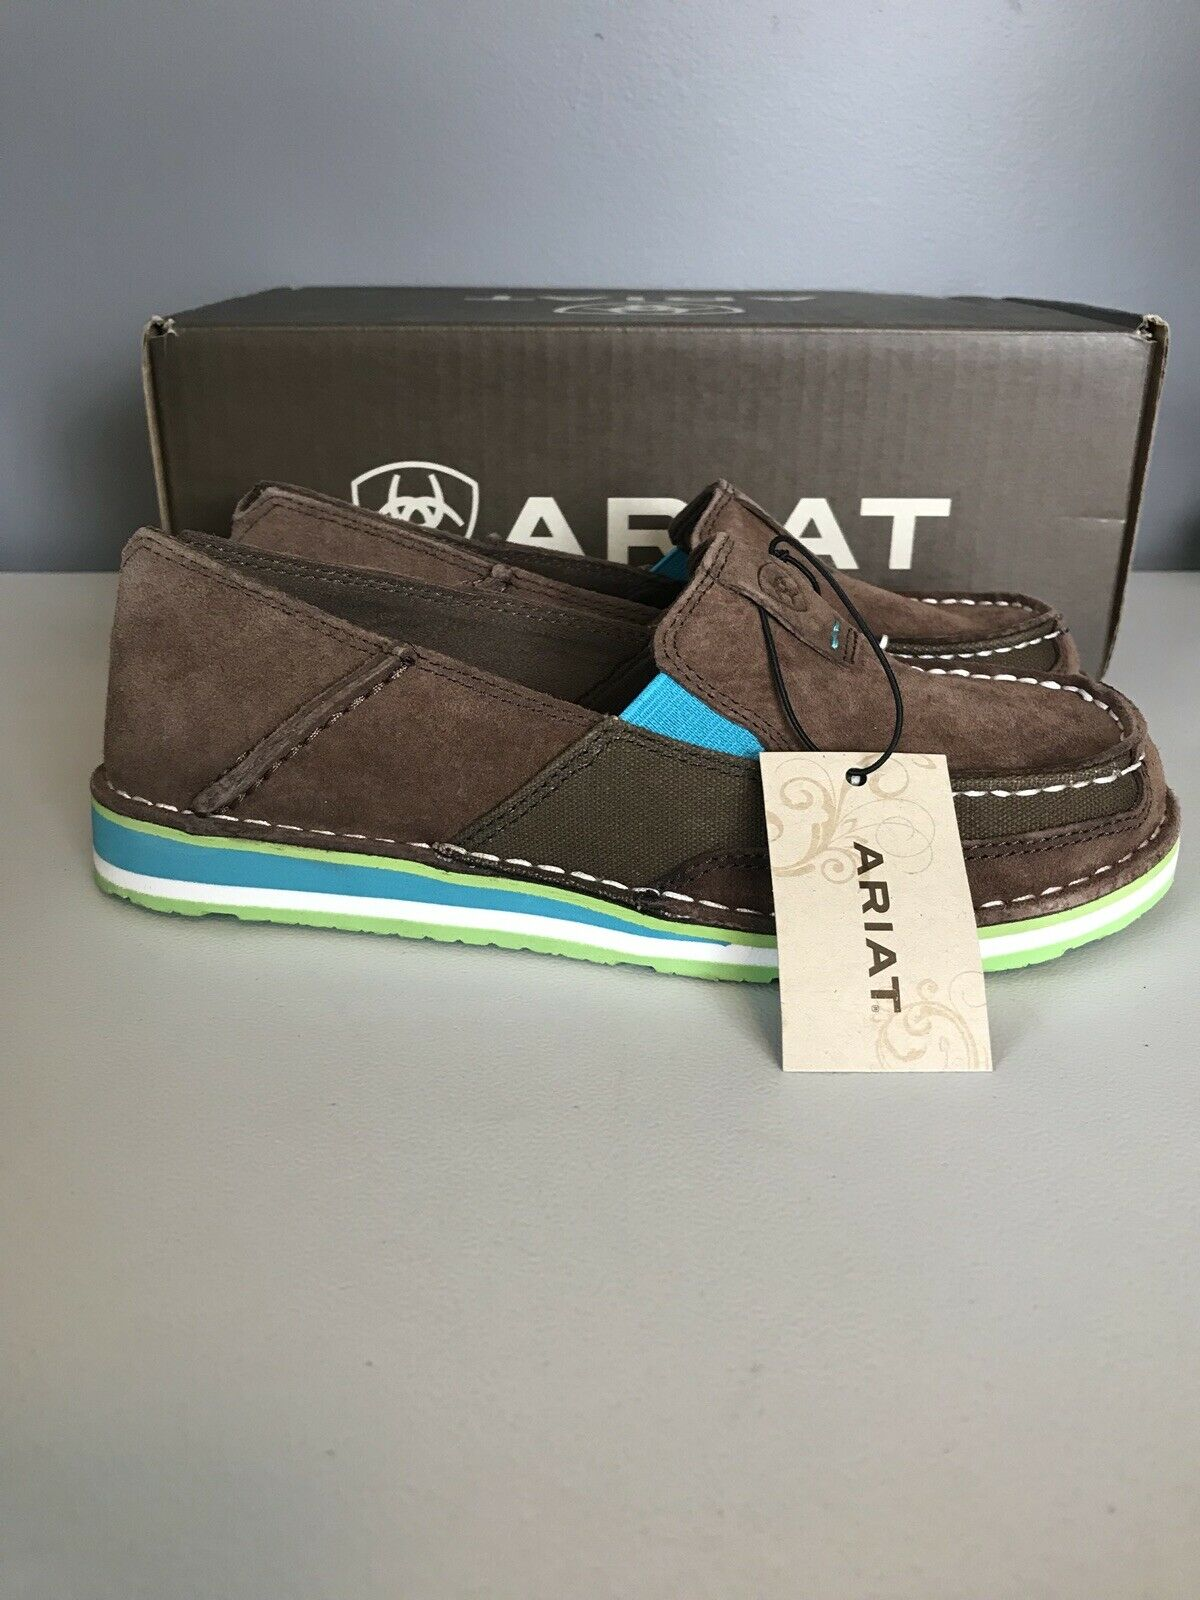 Ariat Cruiser Palm Marronee Turquoise Leather Slip On sautope donna 6